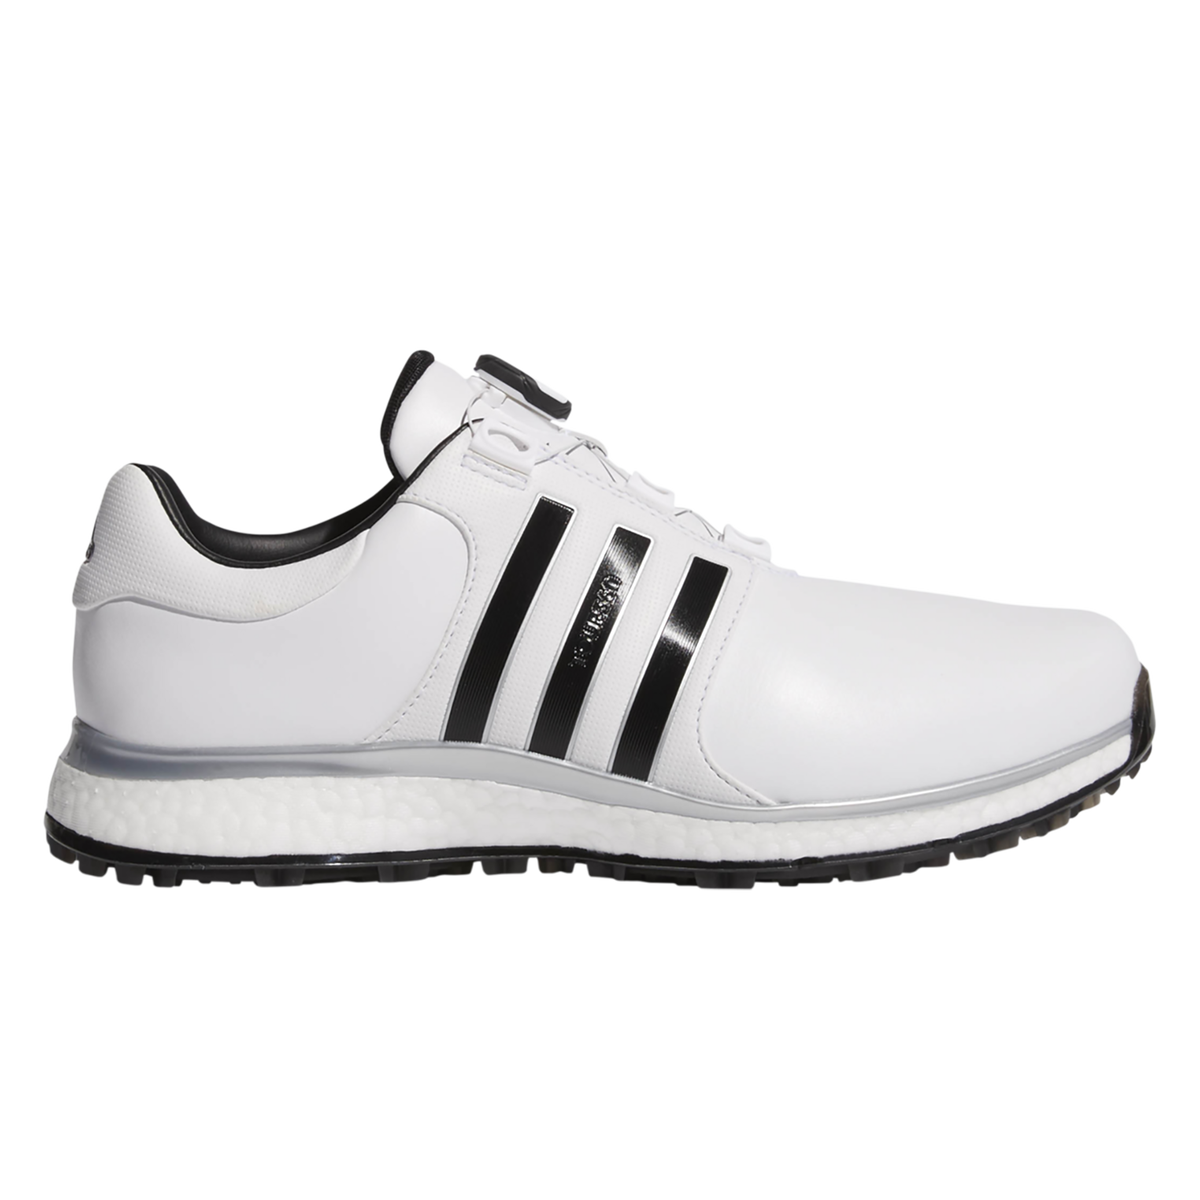 size 40 aa31f 9f81d Images. TOUR360 XT-SL BOA Men  39 s Golf Shoe - White Black